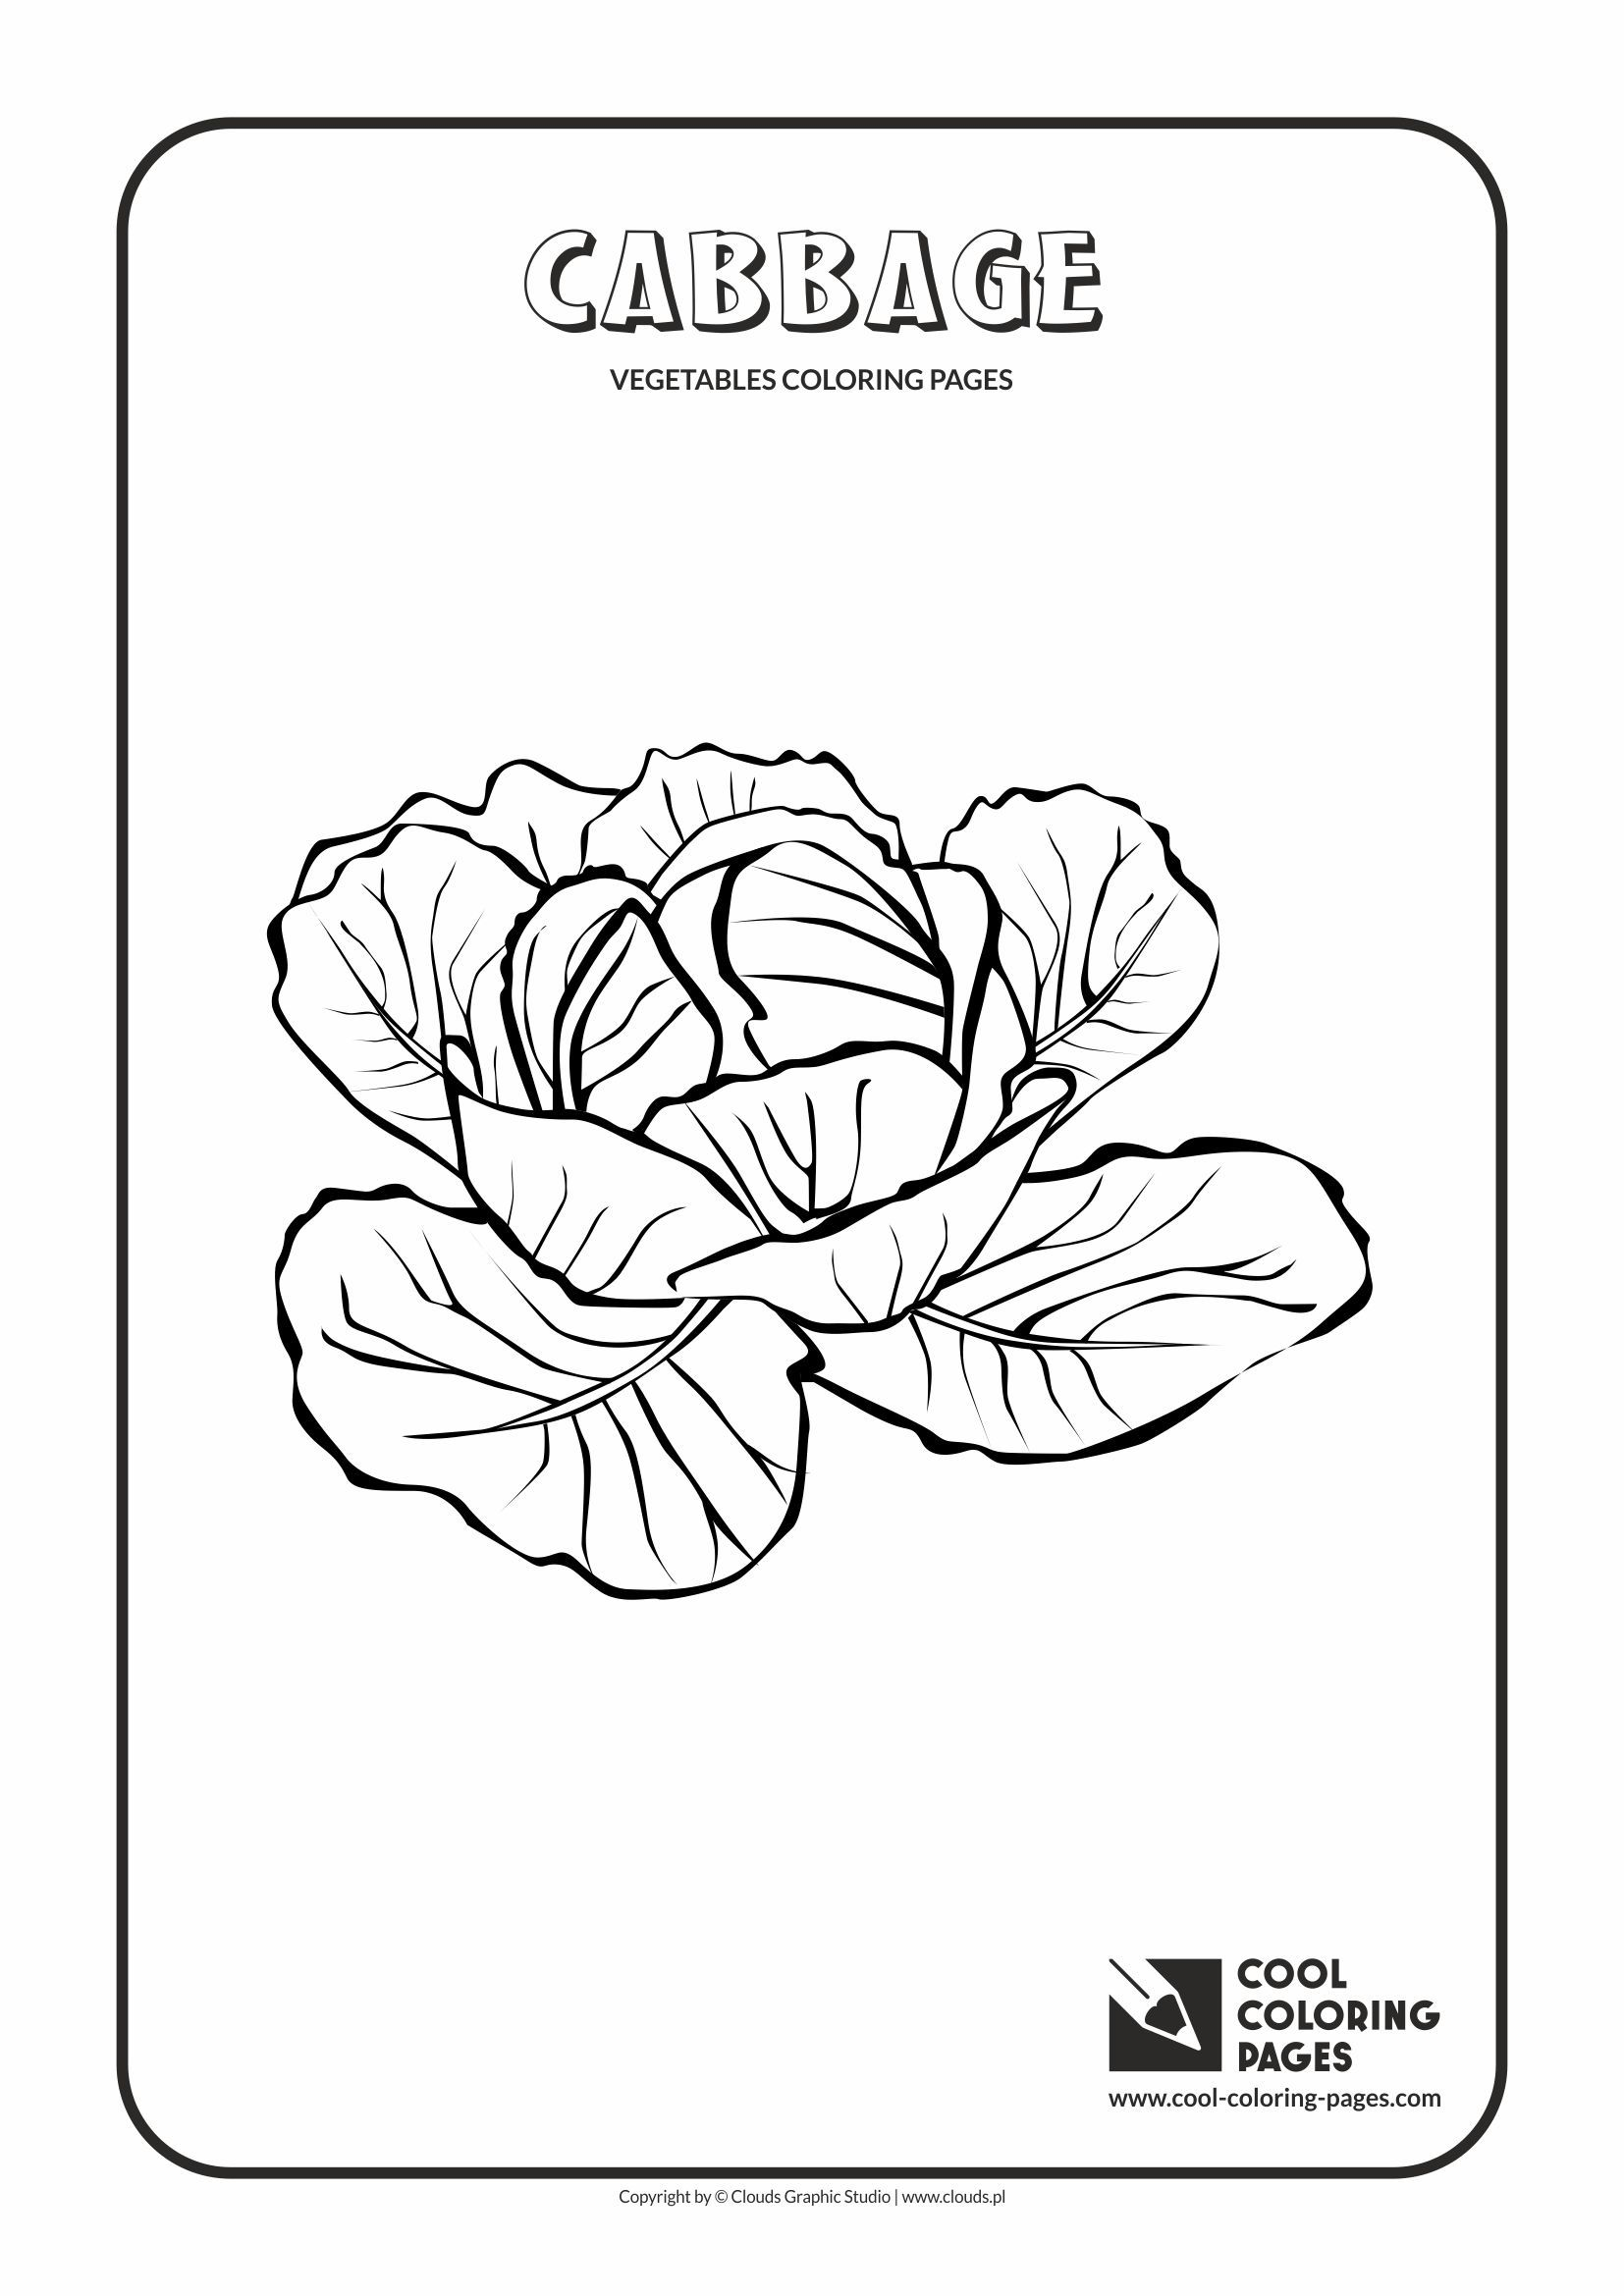 Colouring pages of cabbage - Cool Coloring Pages Plants Cabbage Coloring Page With Cabbage